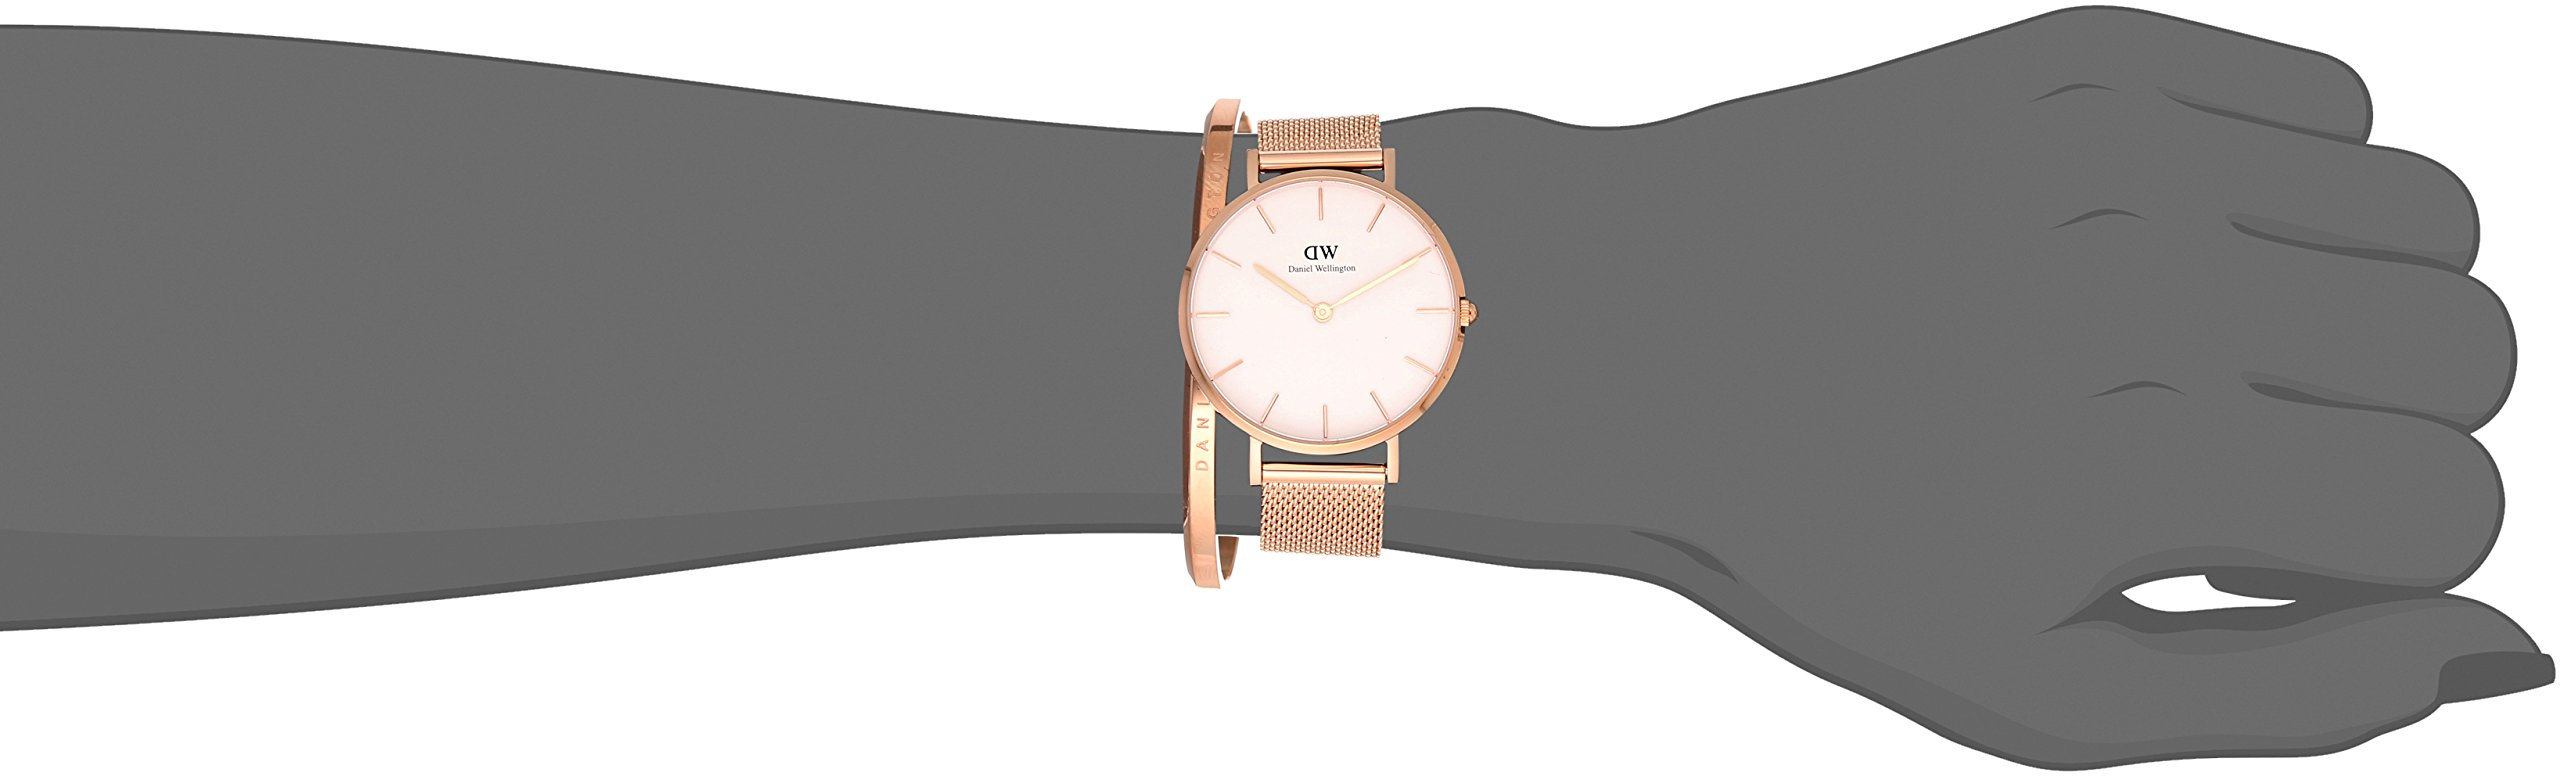 Daniel Wellington Gift Set, Classic Petite Melrose 32mm Watch with Rose Gold Classic Cuff, Color:Rose Gold-Toned (Model: DW00500003) by Daniel Wellington (Image #3)